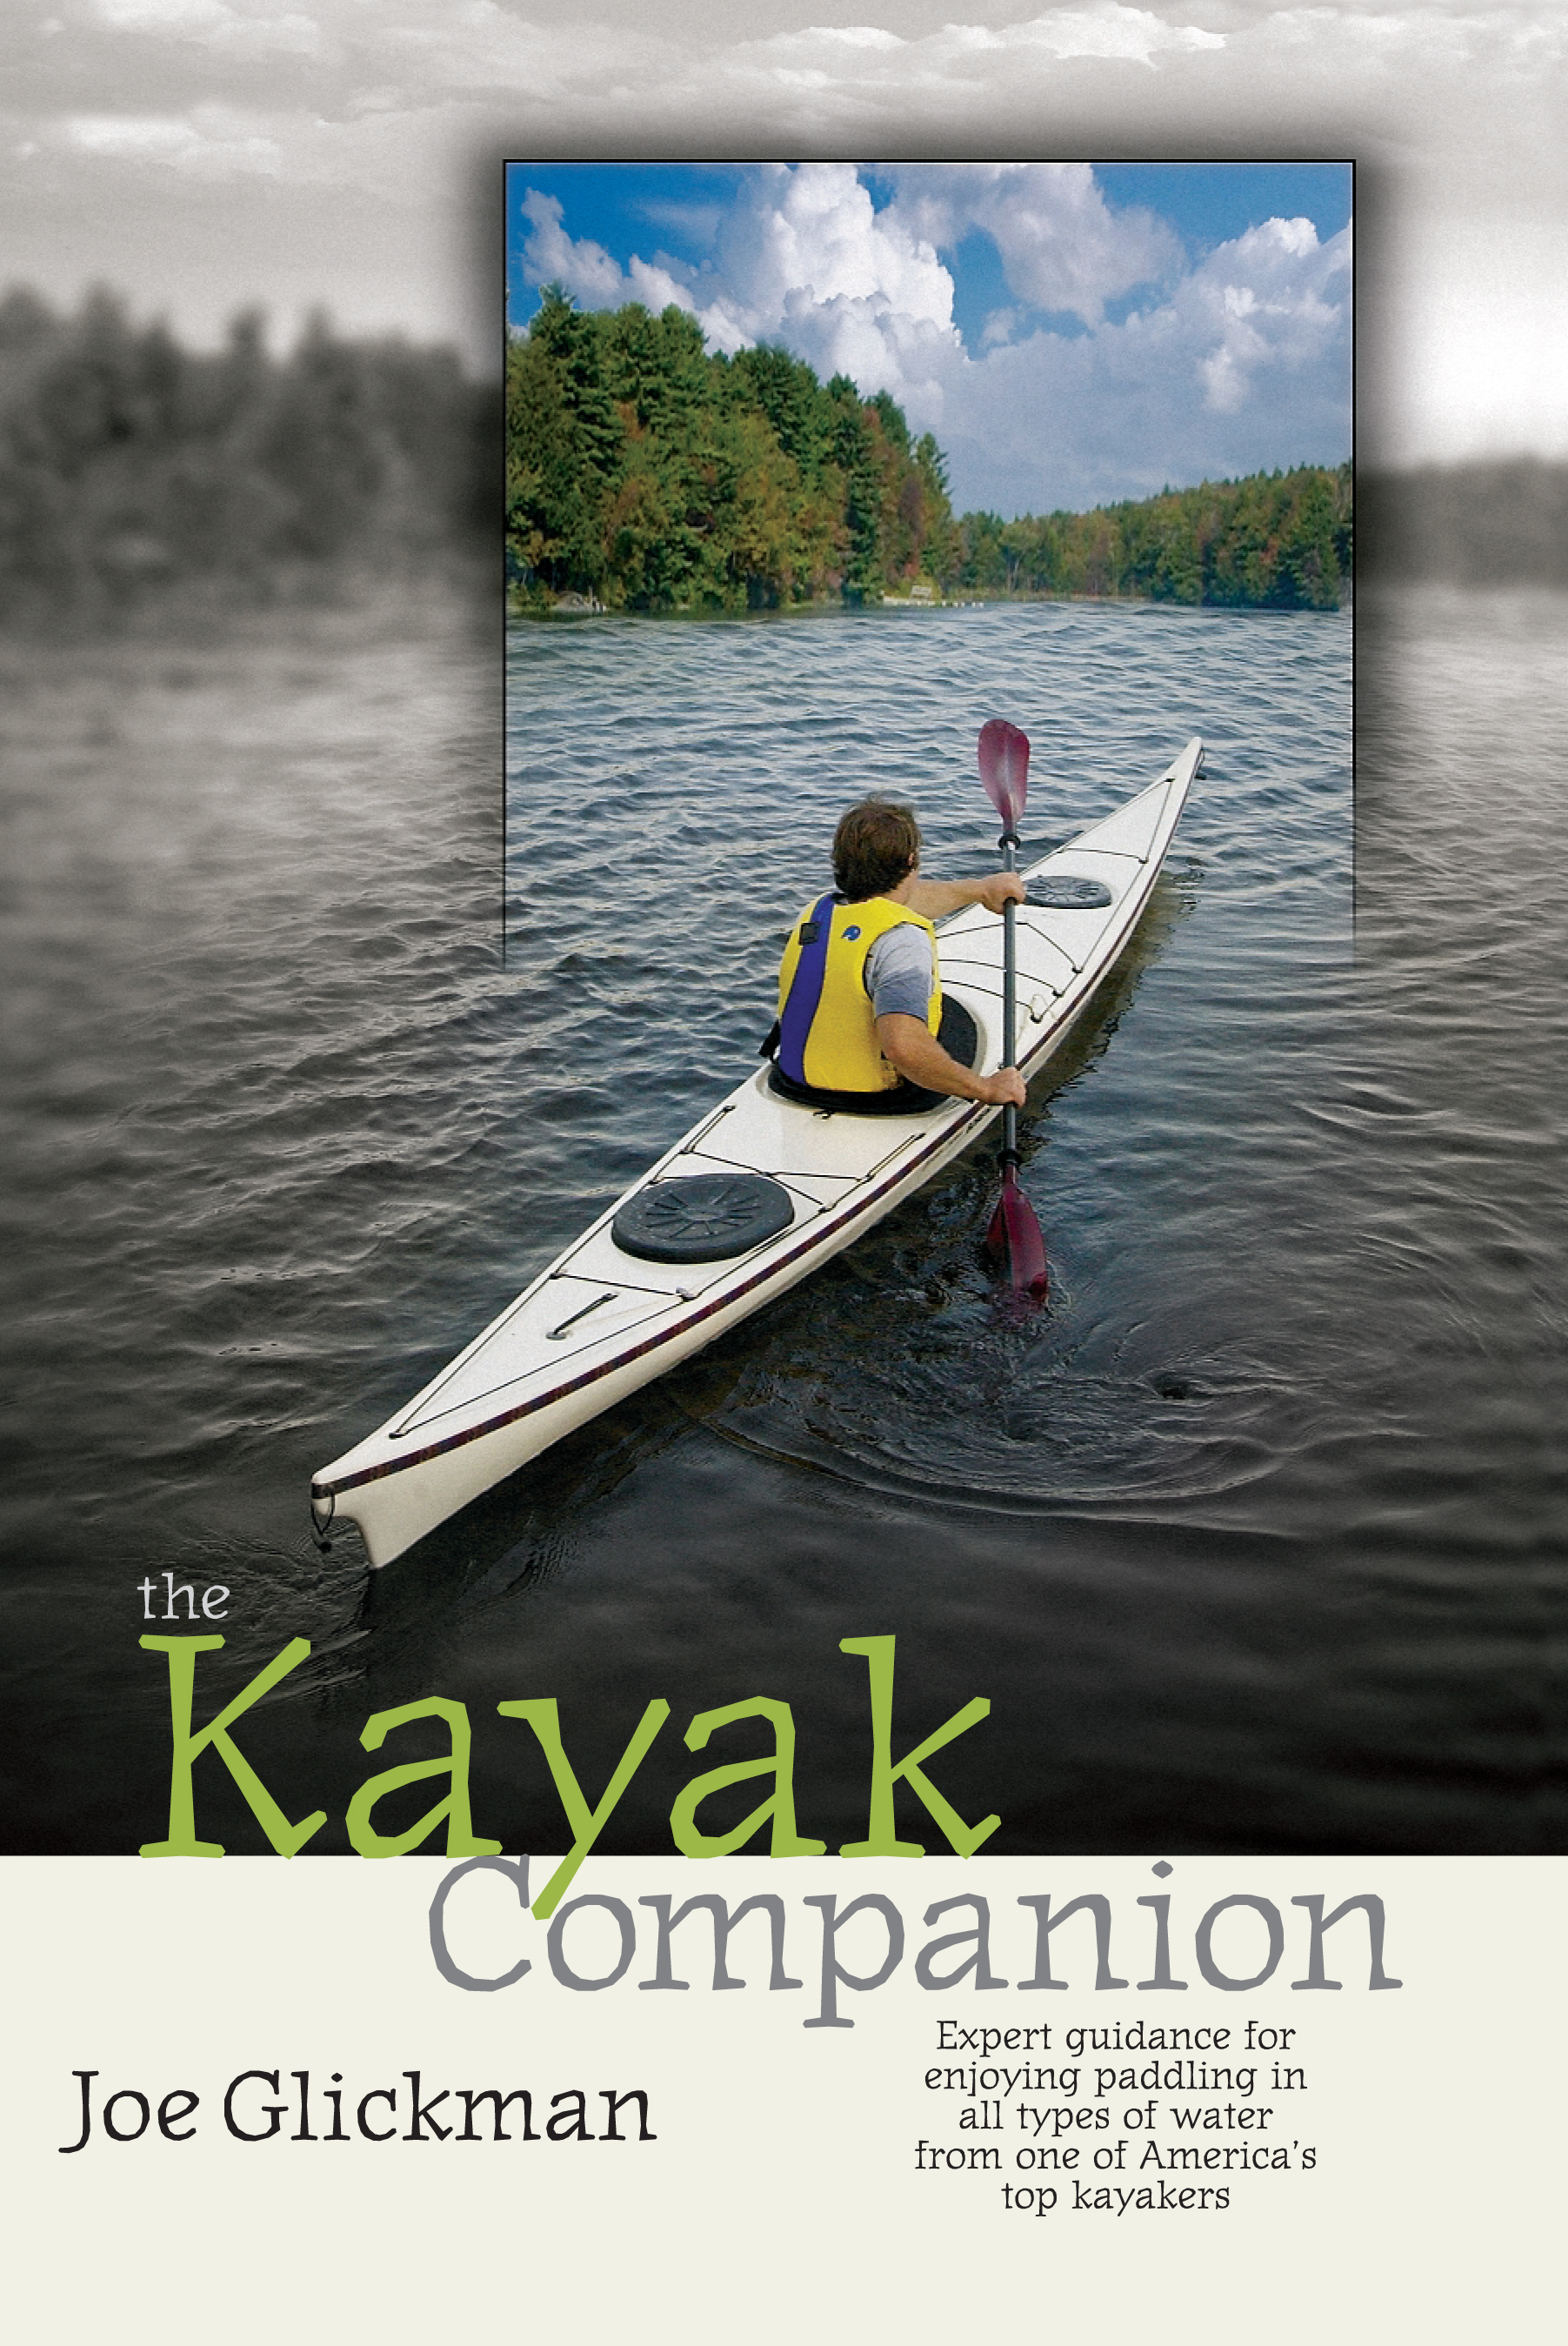 The Kayak Companion Expert guidance for enjoying the paddling experience in water of all types from one of America's premier kayakers - Joe Glickman